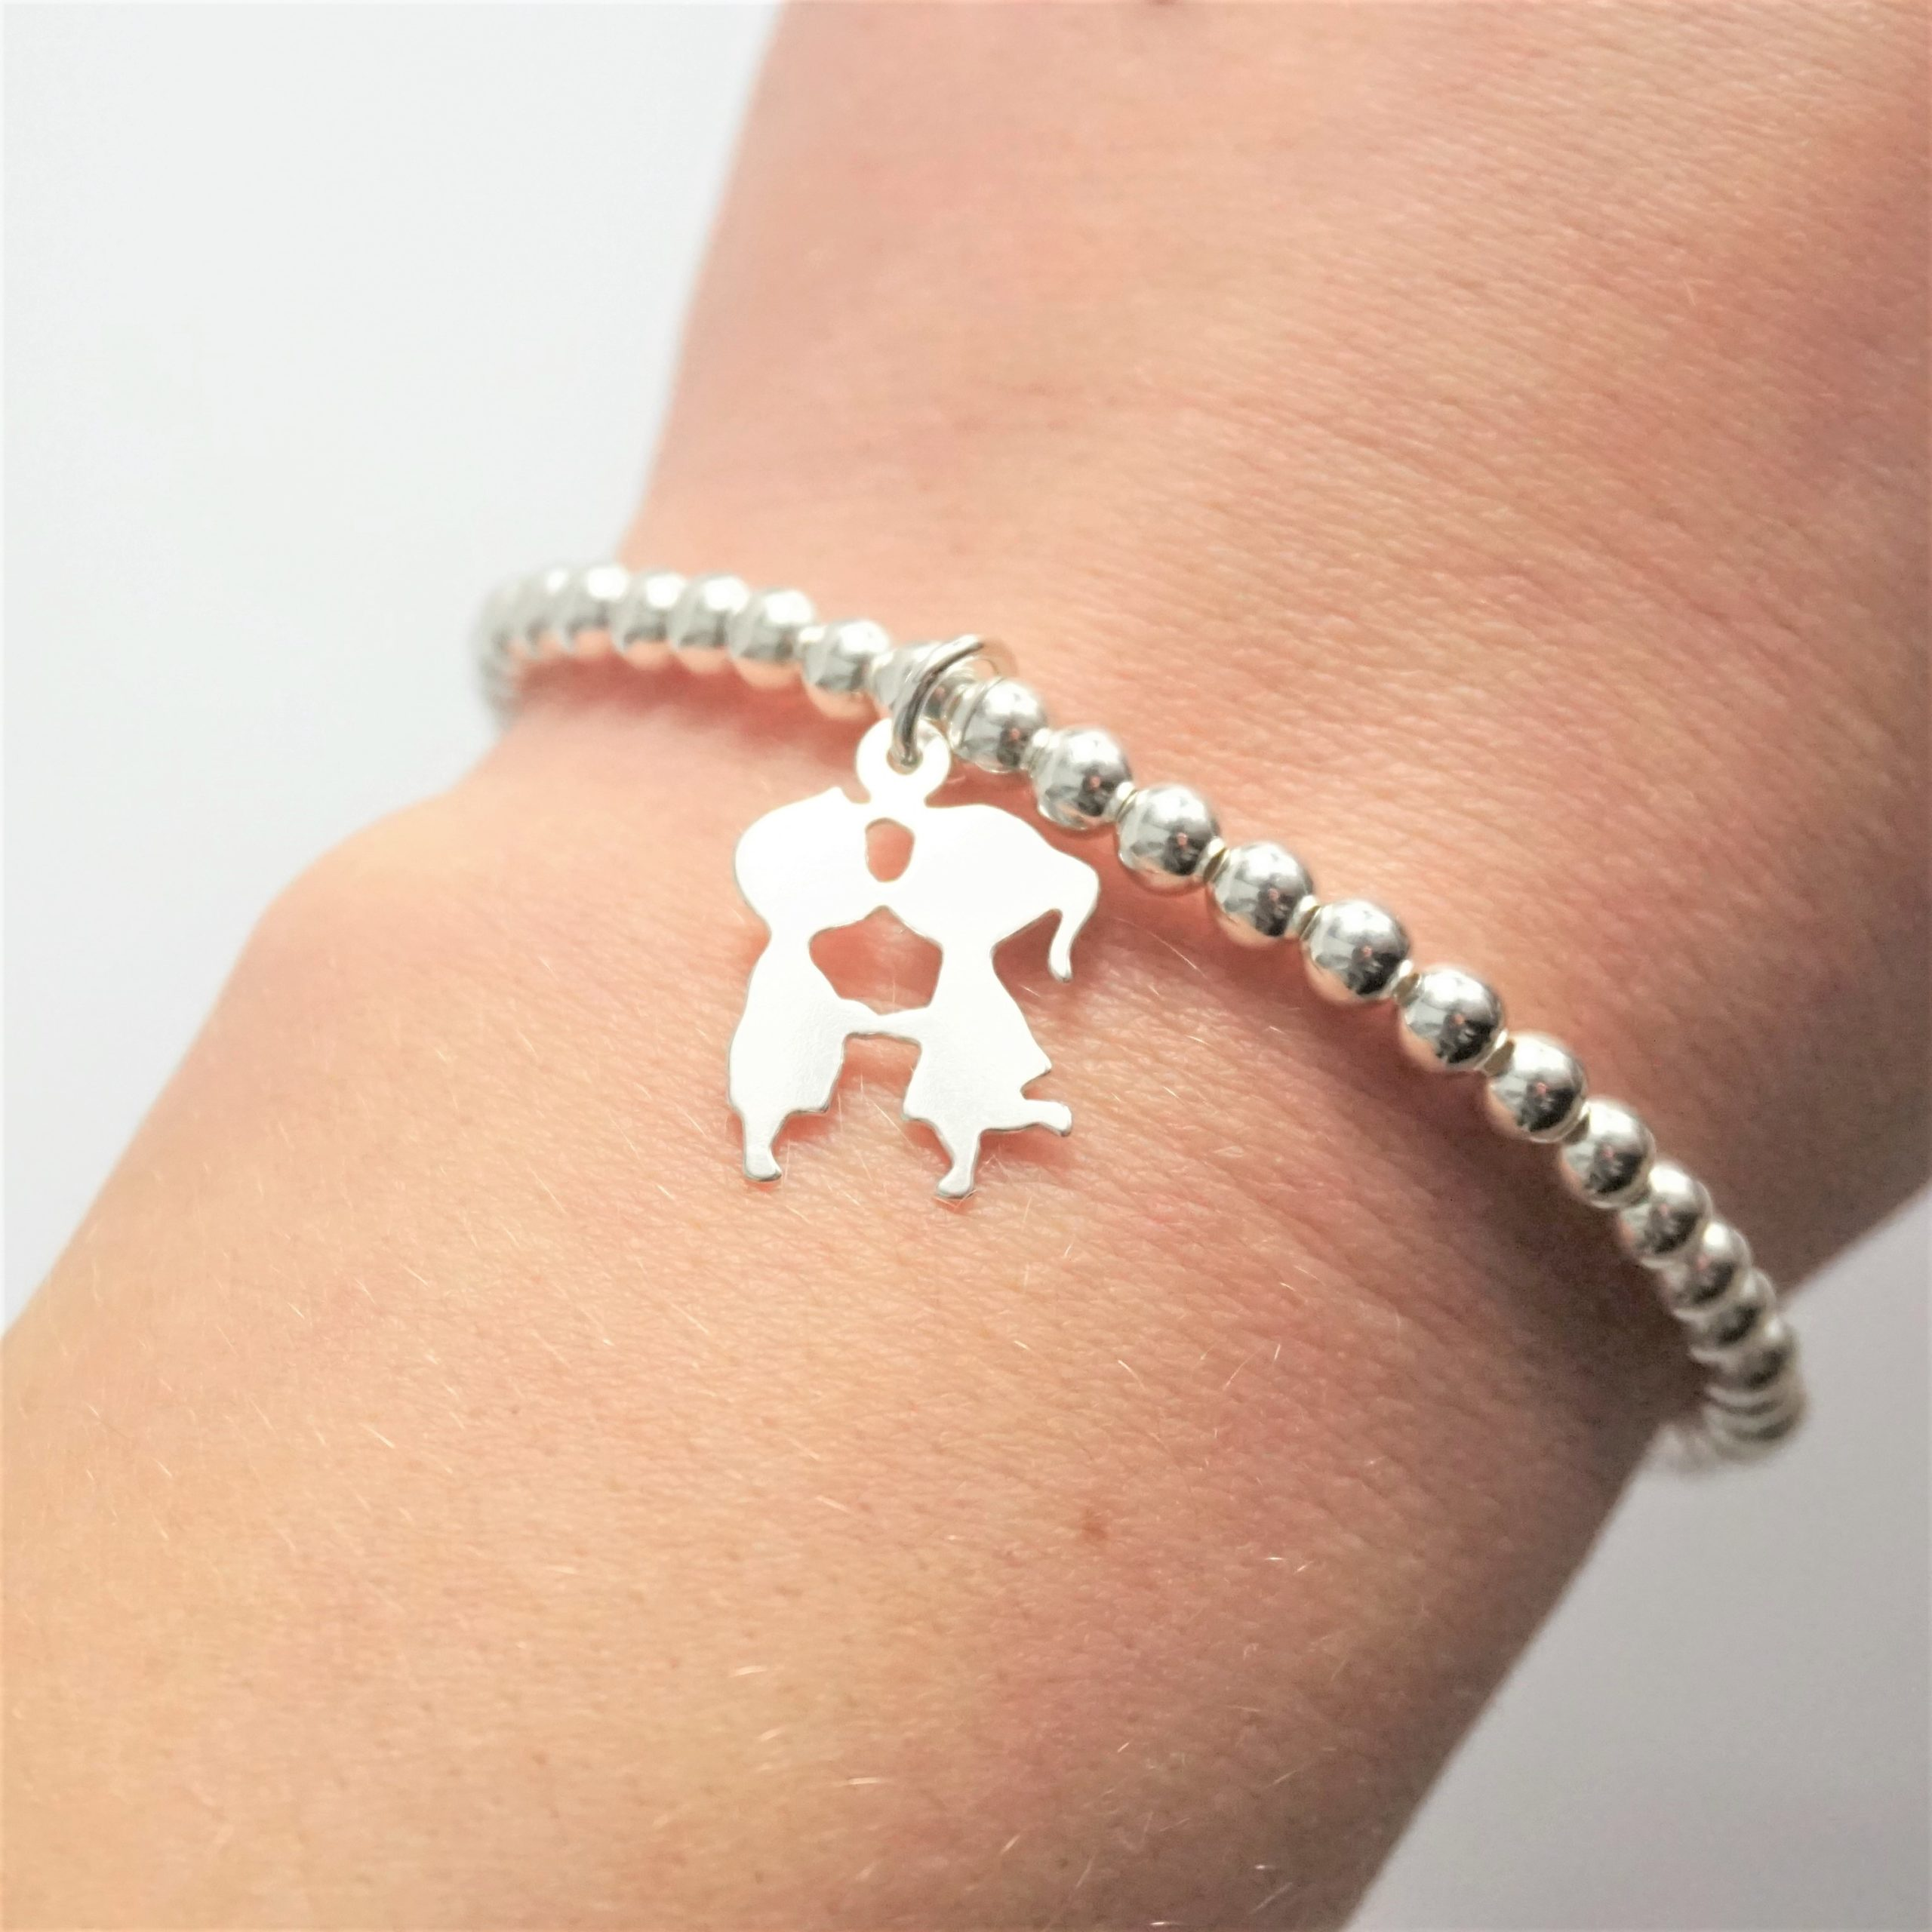 Sterling silver bracelet with kissing couple charm